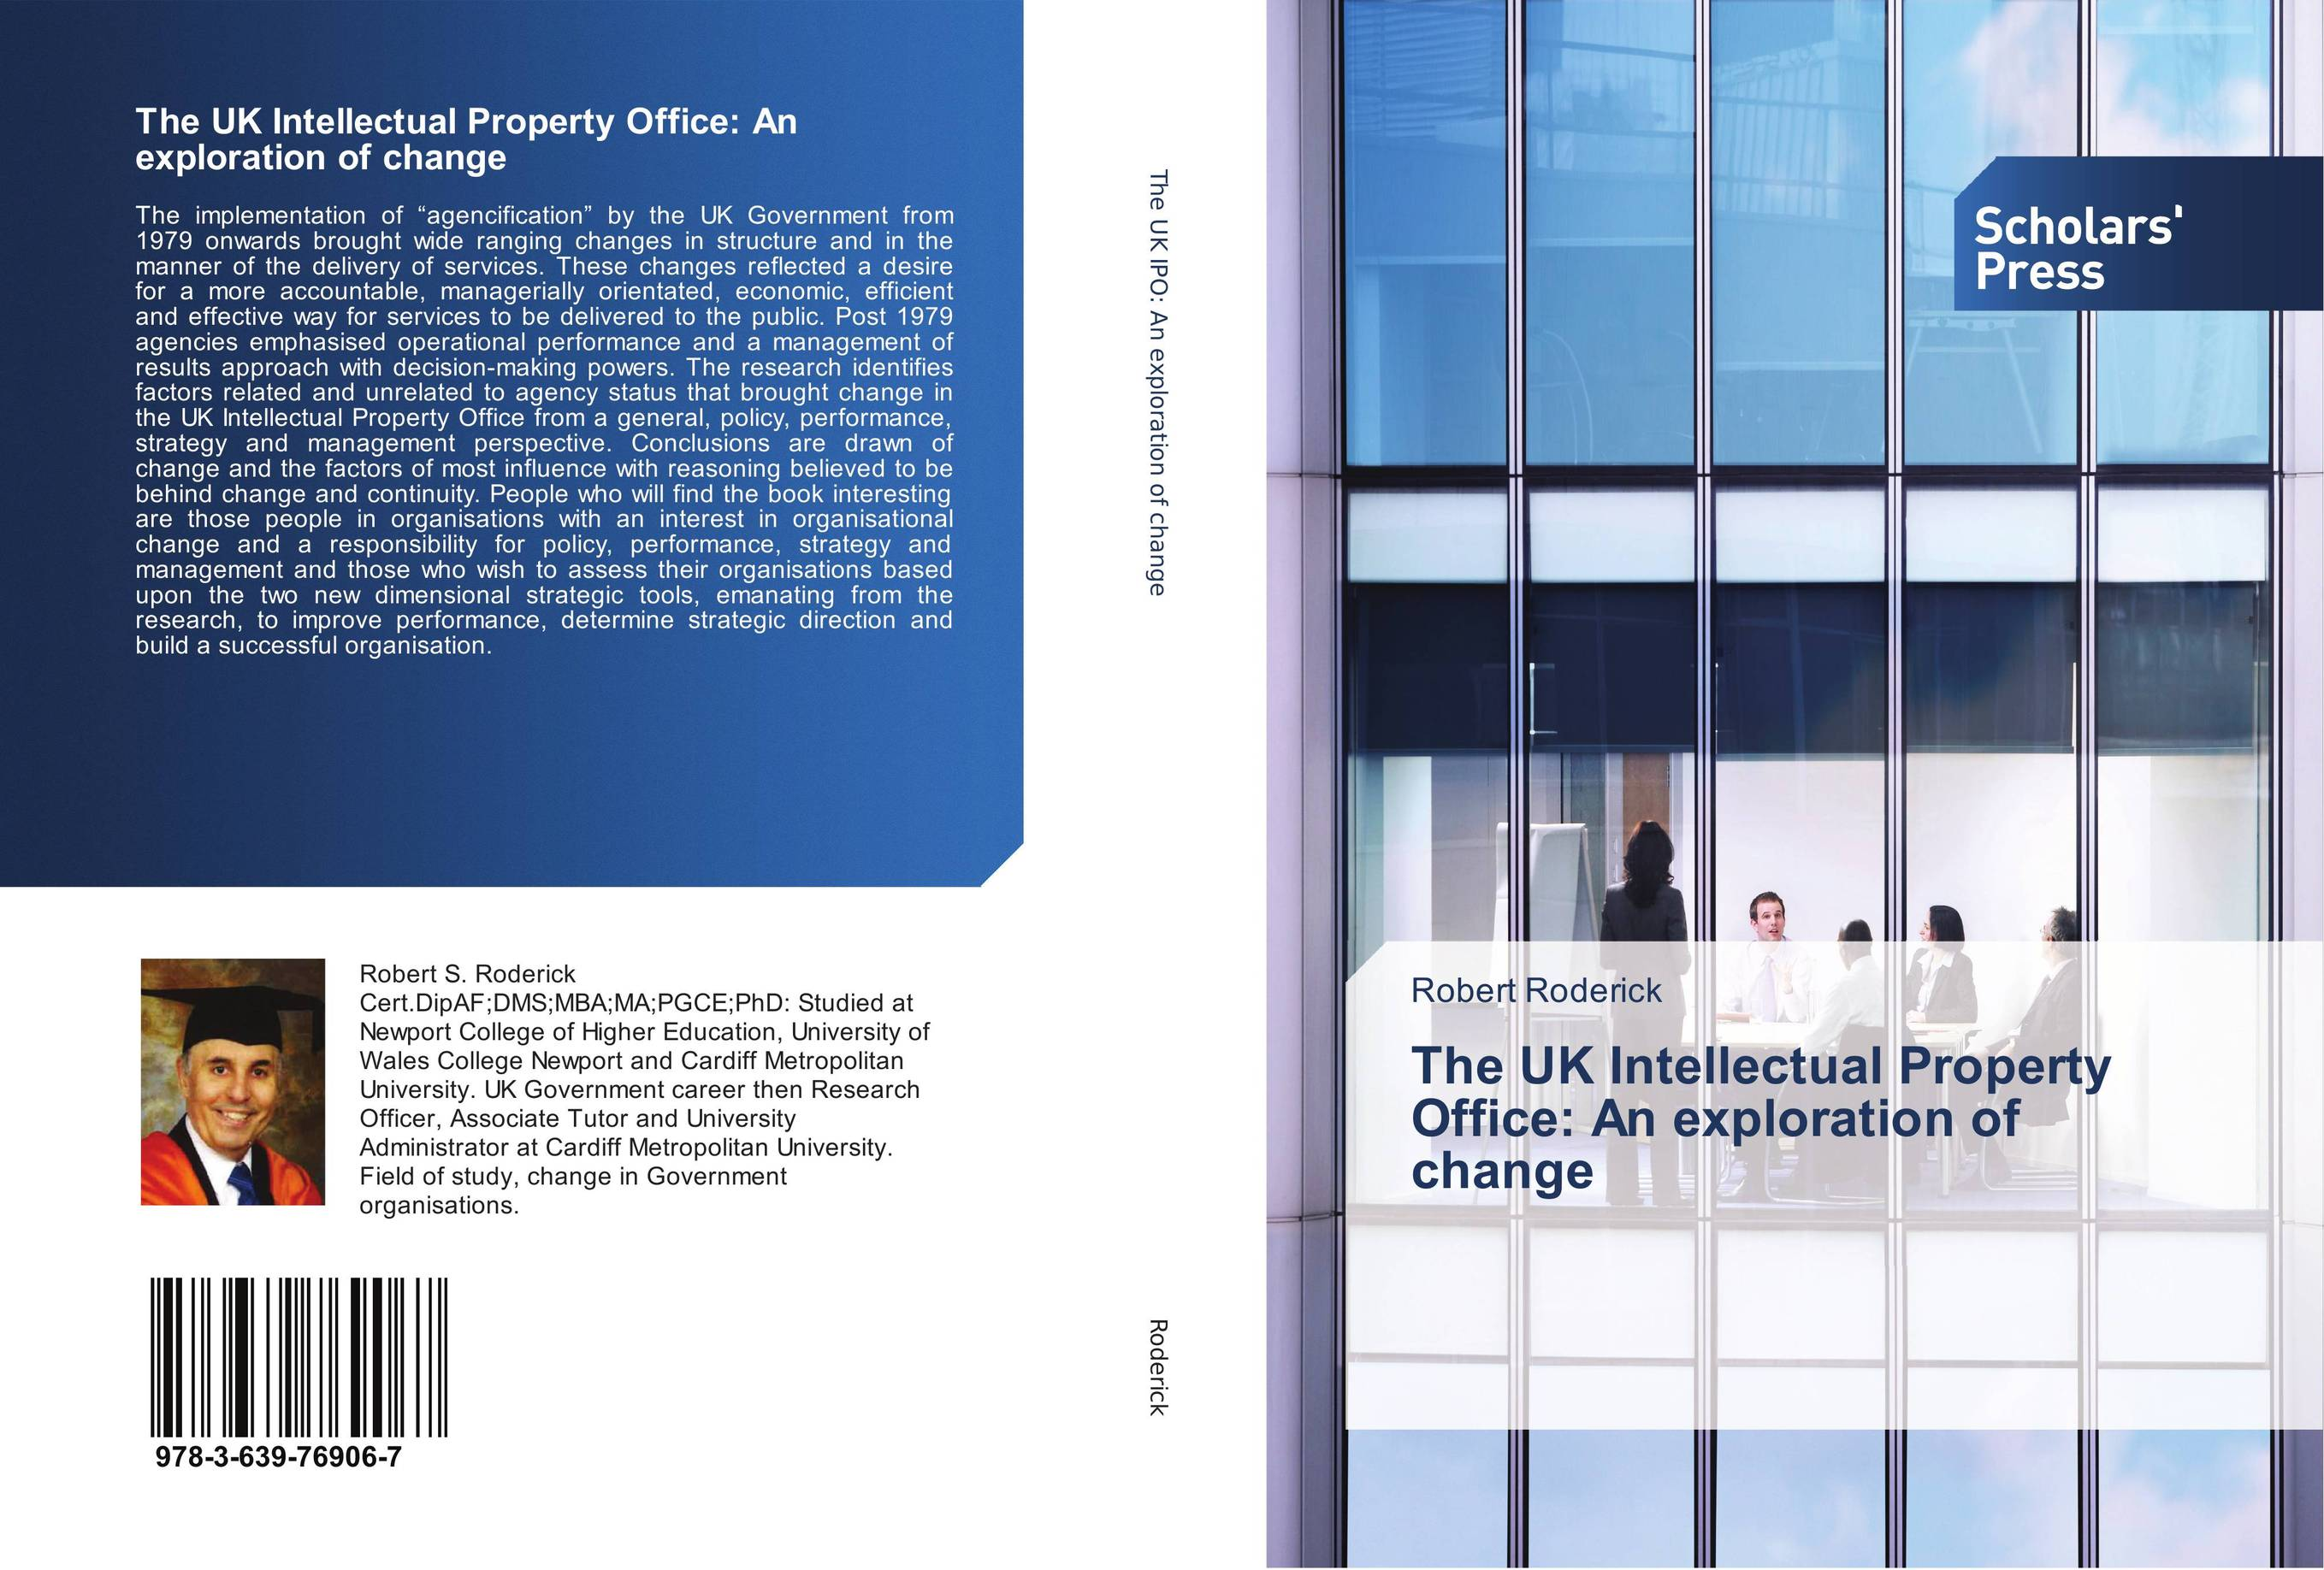 The UK Intellectual Property Office: An exploration of change johan coetsee change lessons from the ceo real people real change